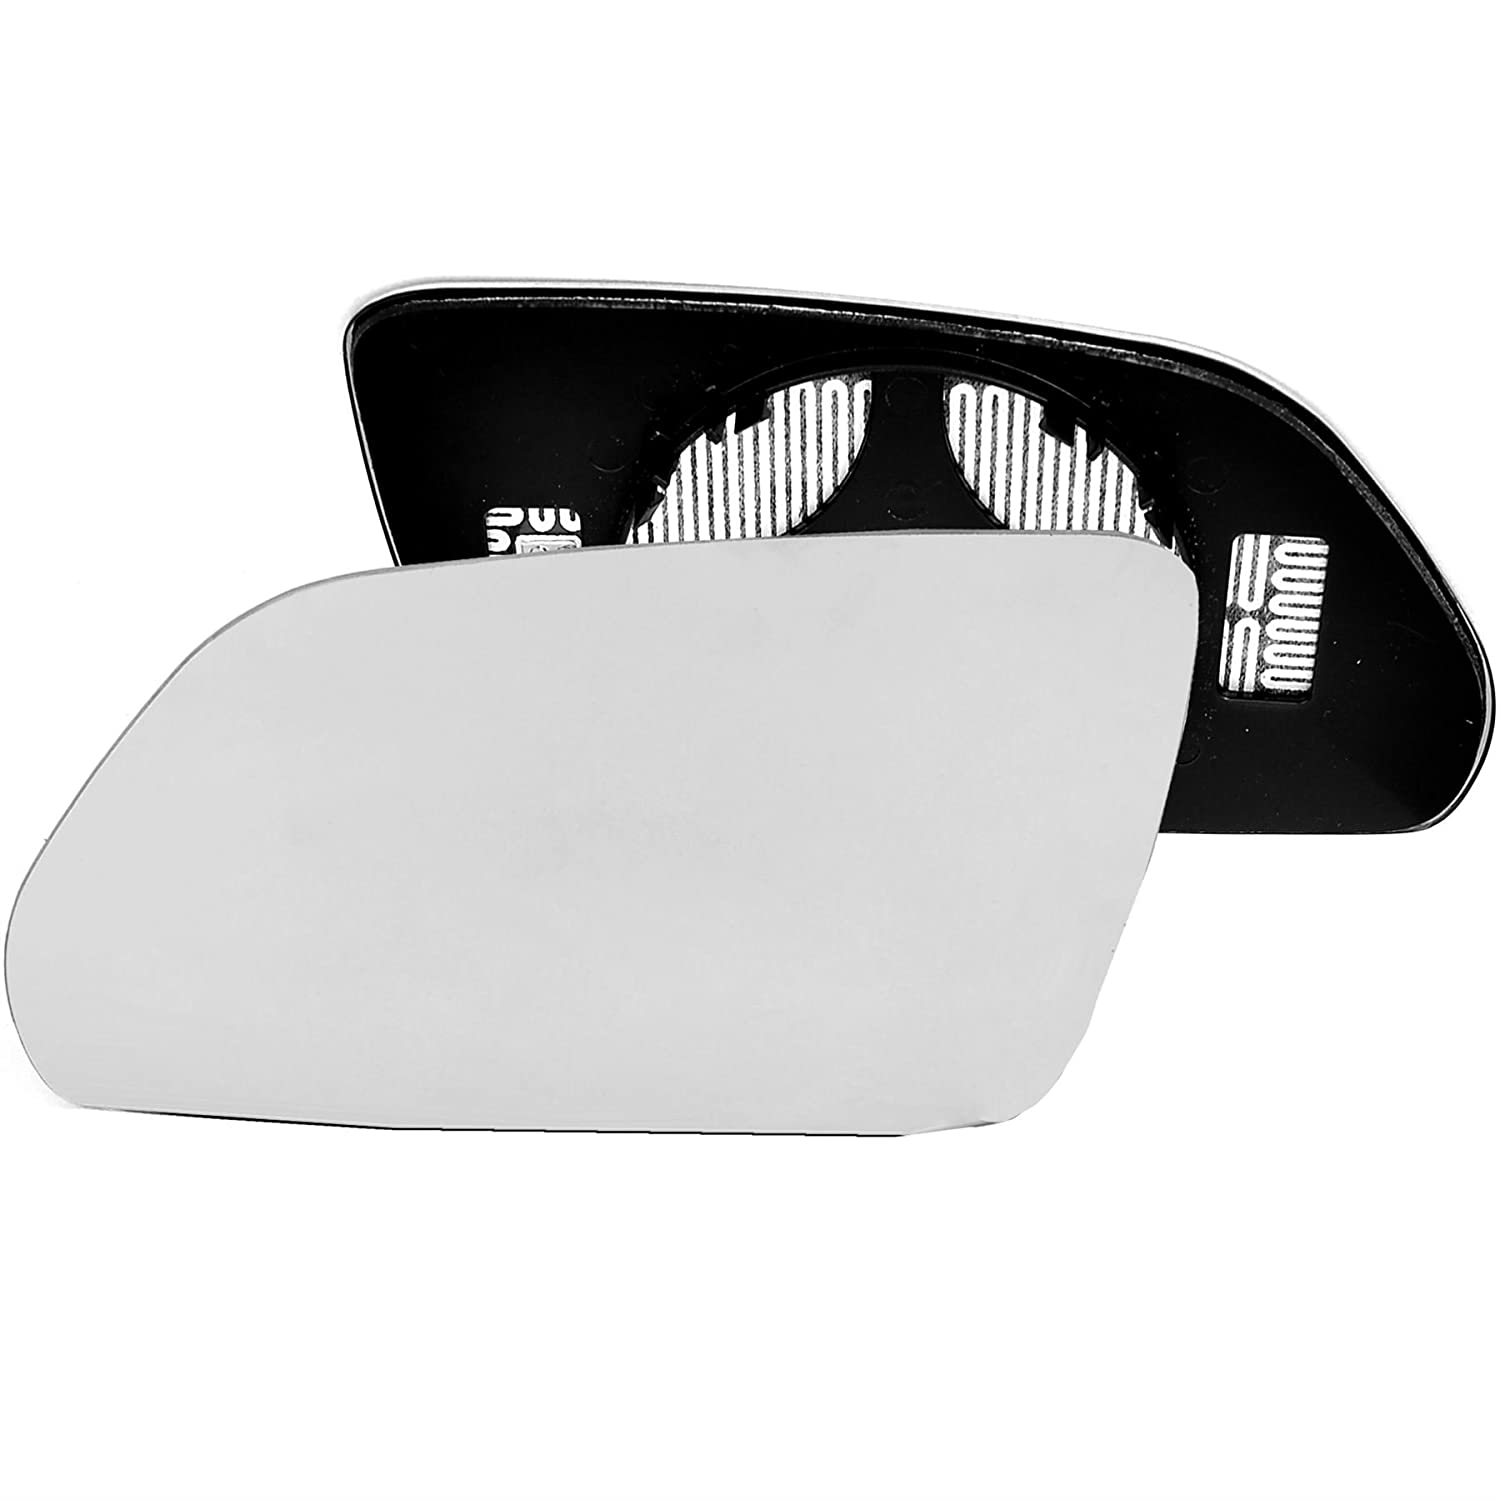 Passenger left hand side Heated wing door Silver mirror glass with backing plate #C-SHY/L-VNPO05 [Clip On] Sylgab